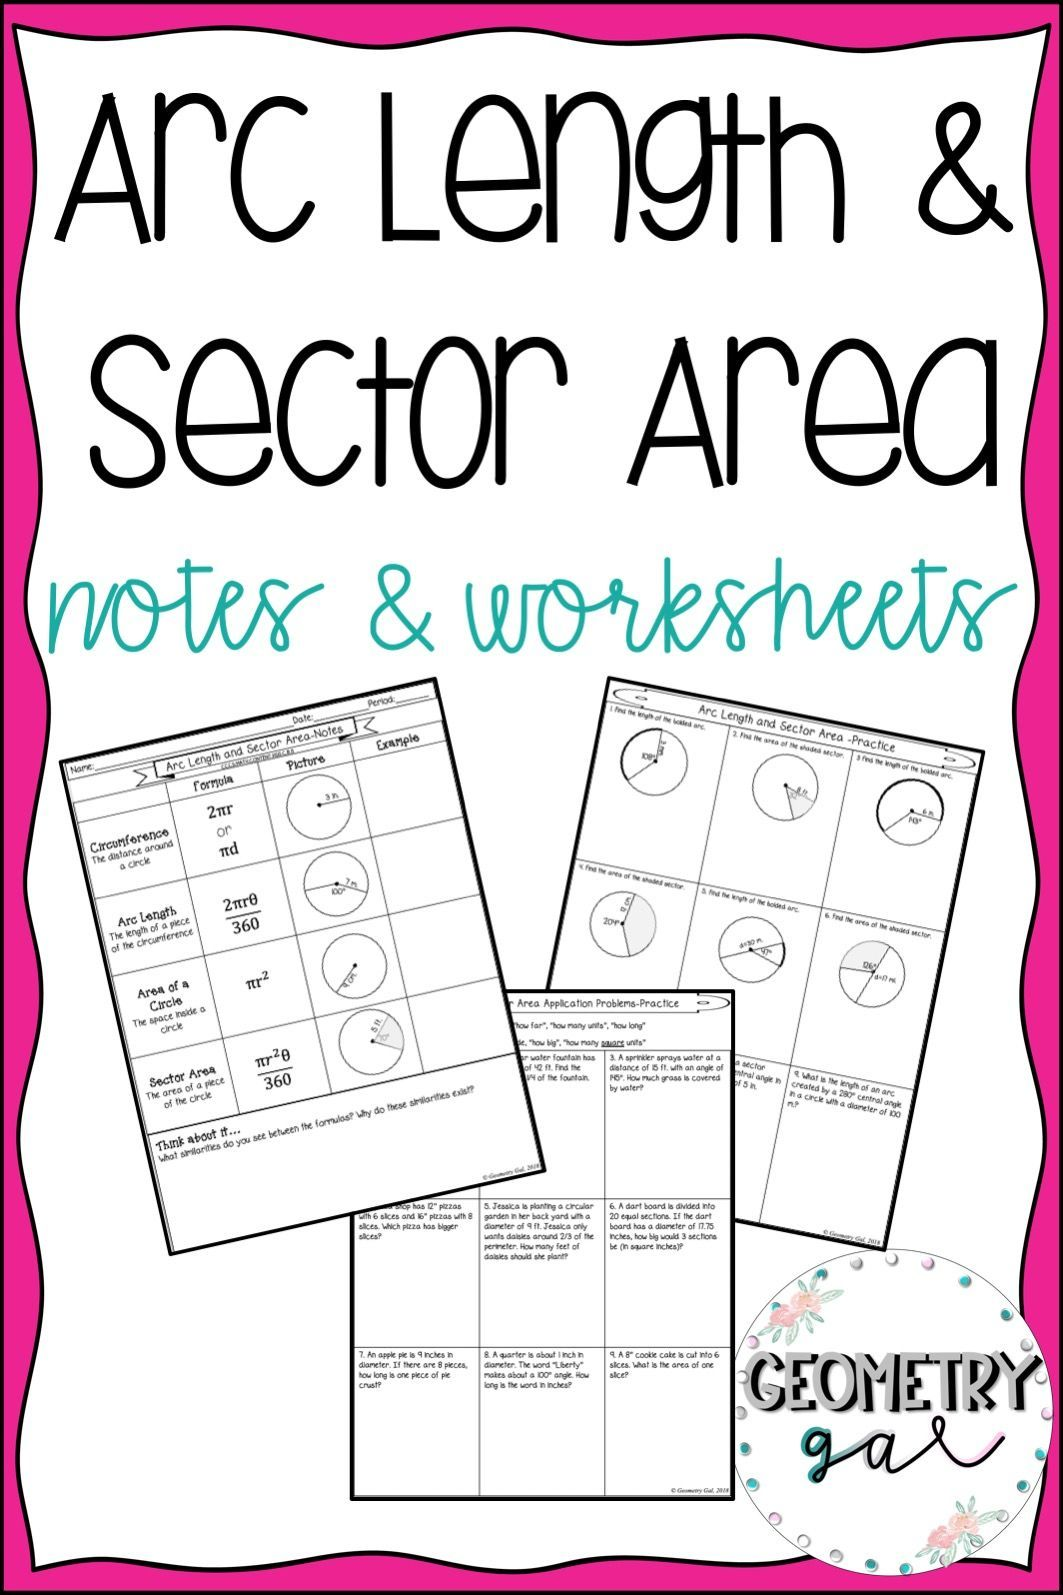 Arc Length And Sector Area Guided Notes And Worksheets